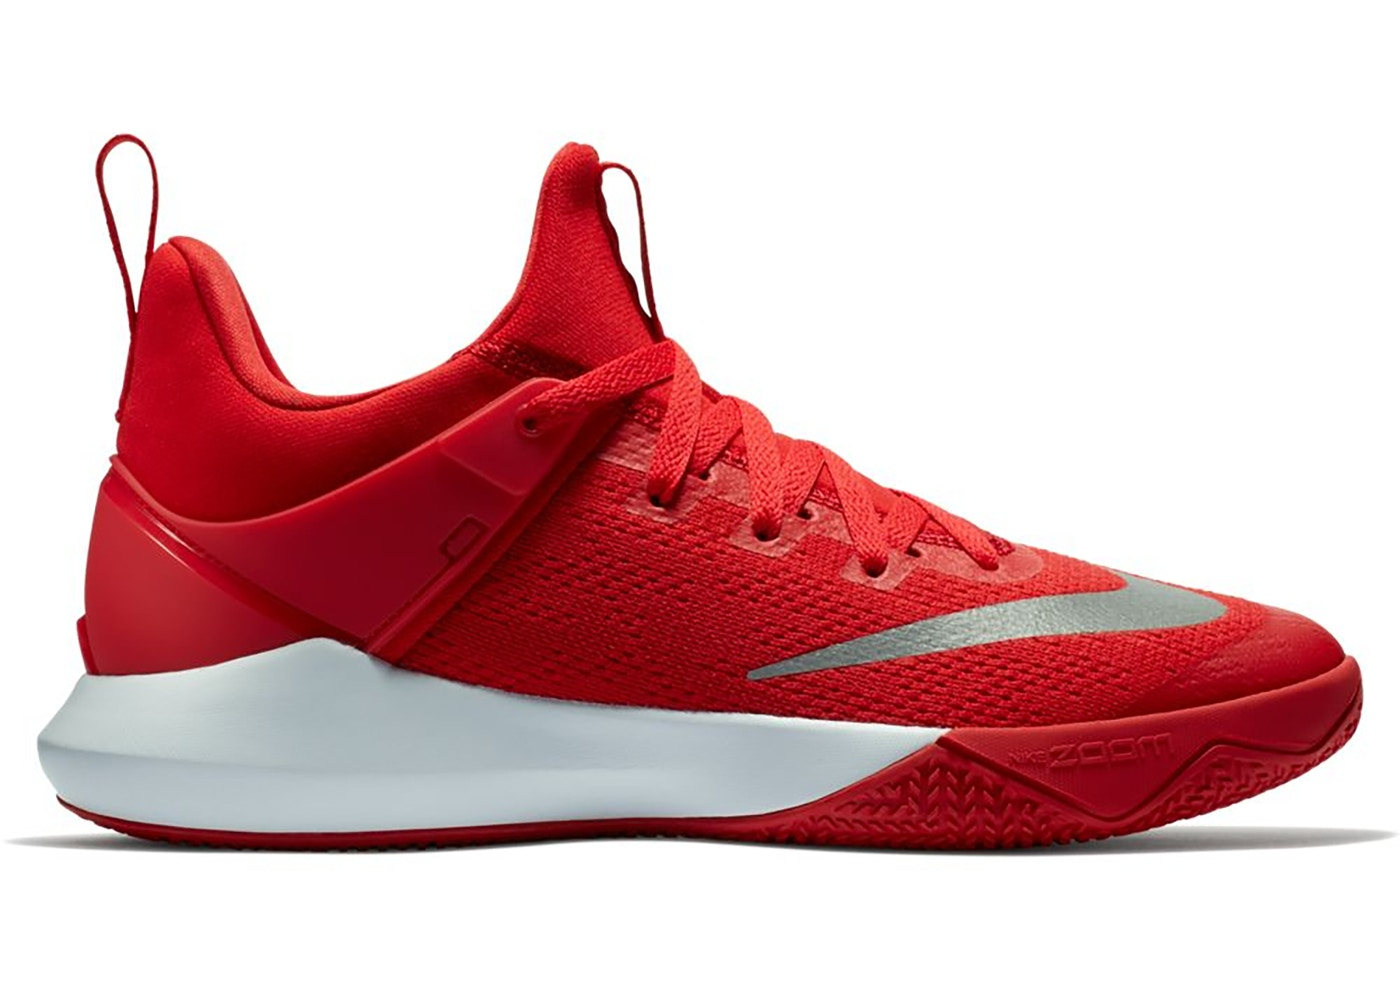 free shipping low cost catch Nike Zoom Shift TB University Red - 897811-600